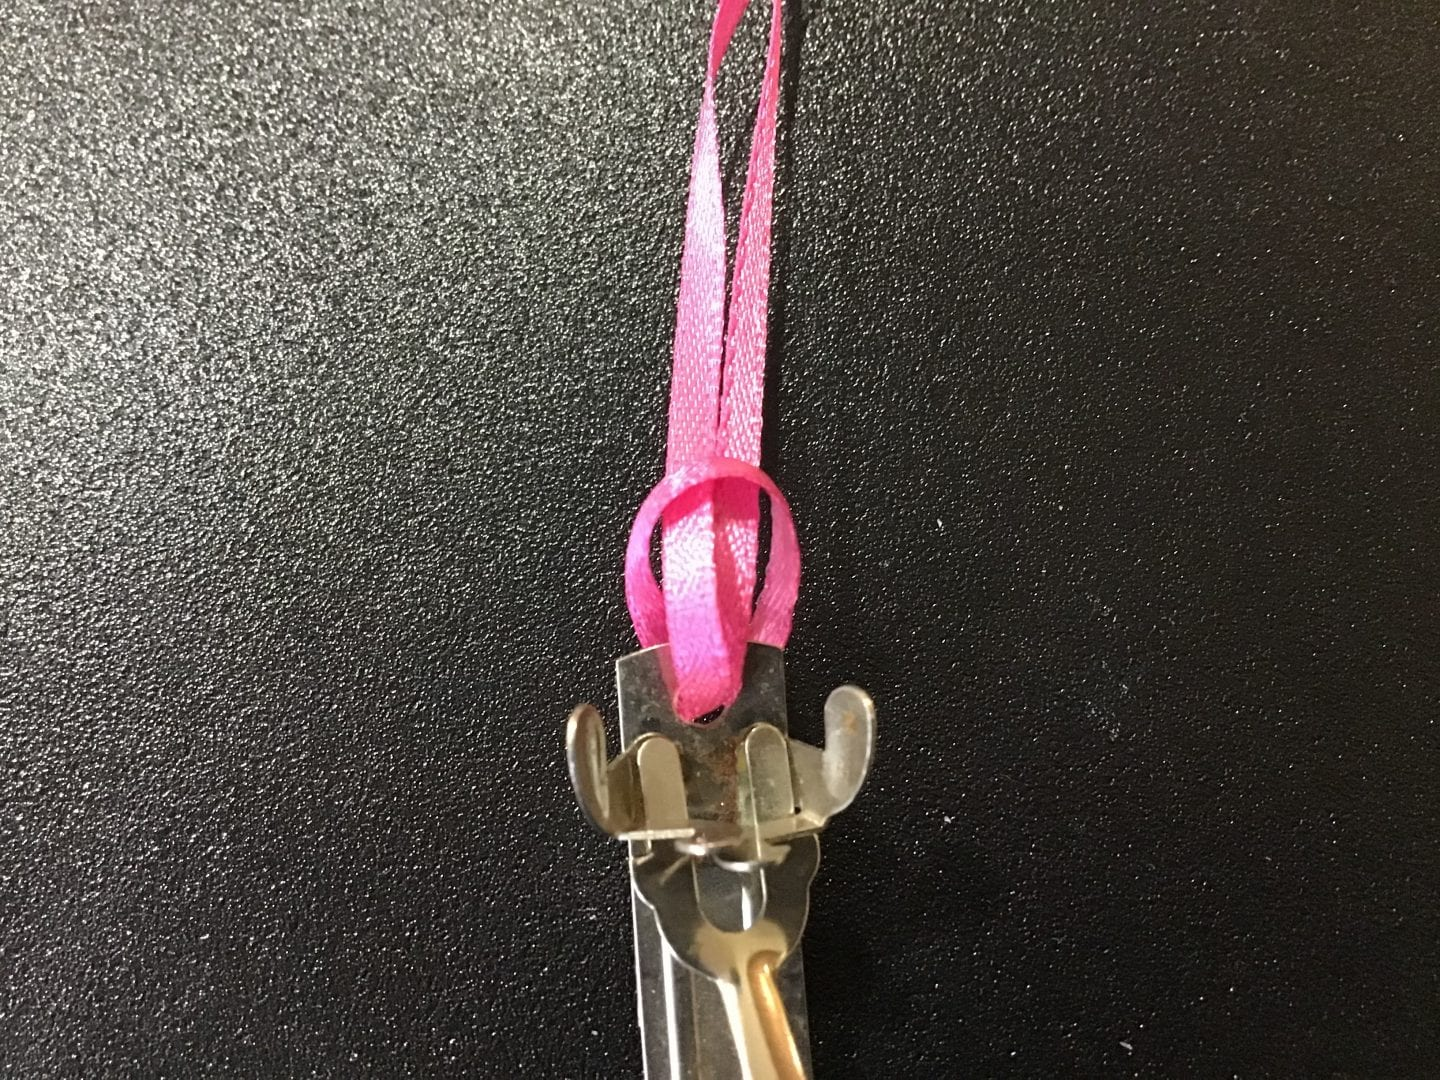 the two ends of the pink ribbon inserted through the open hole in the barrette and pulled through the loop at the other end of the ribbon